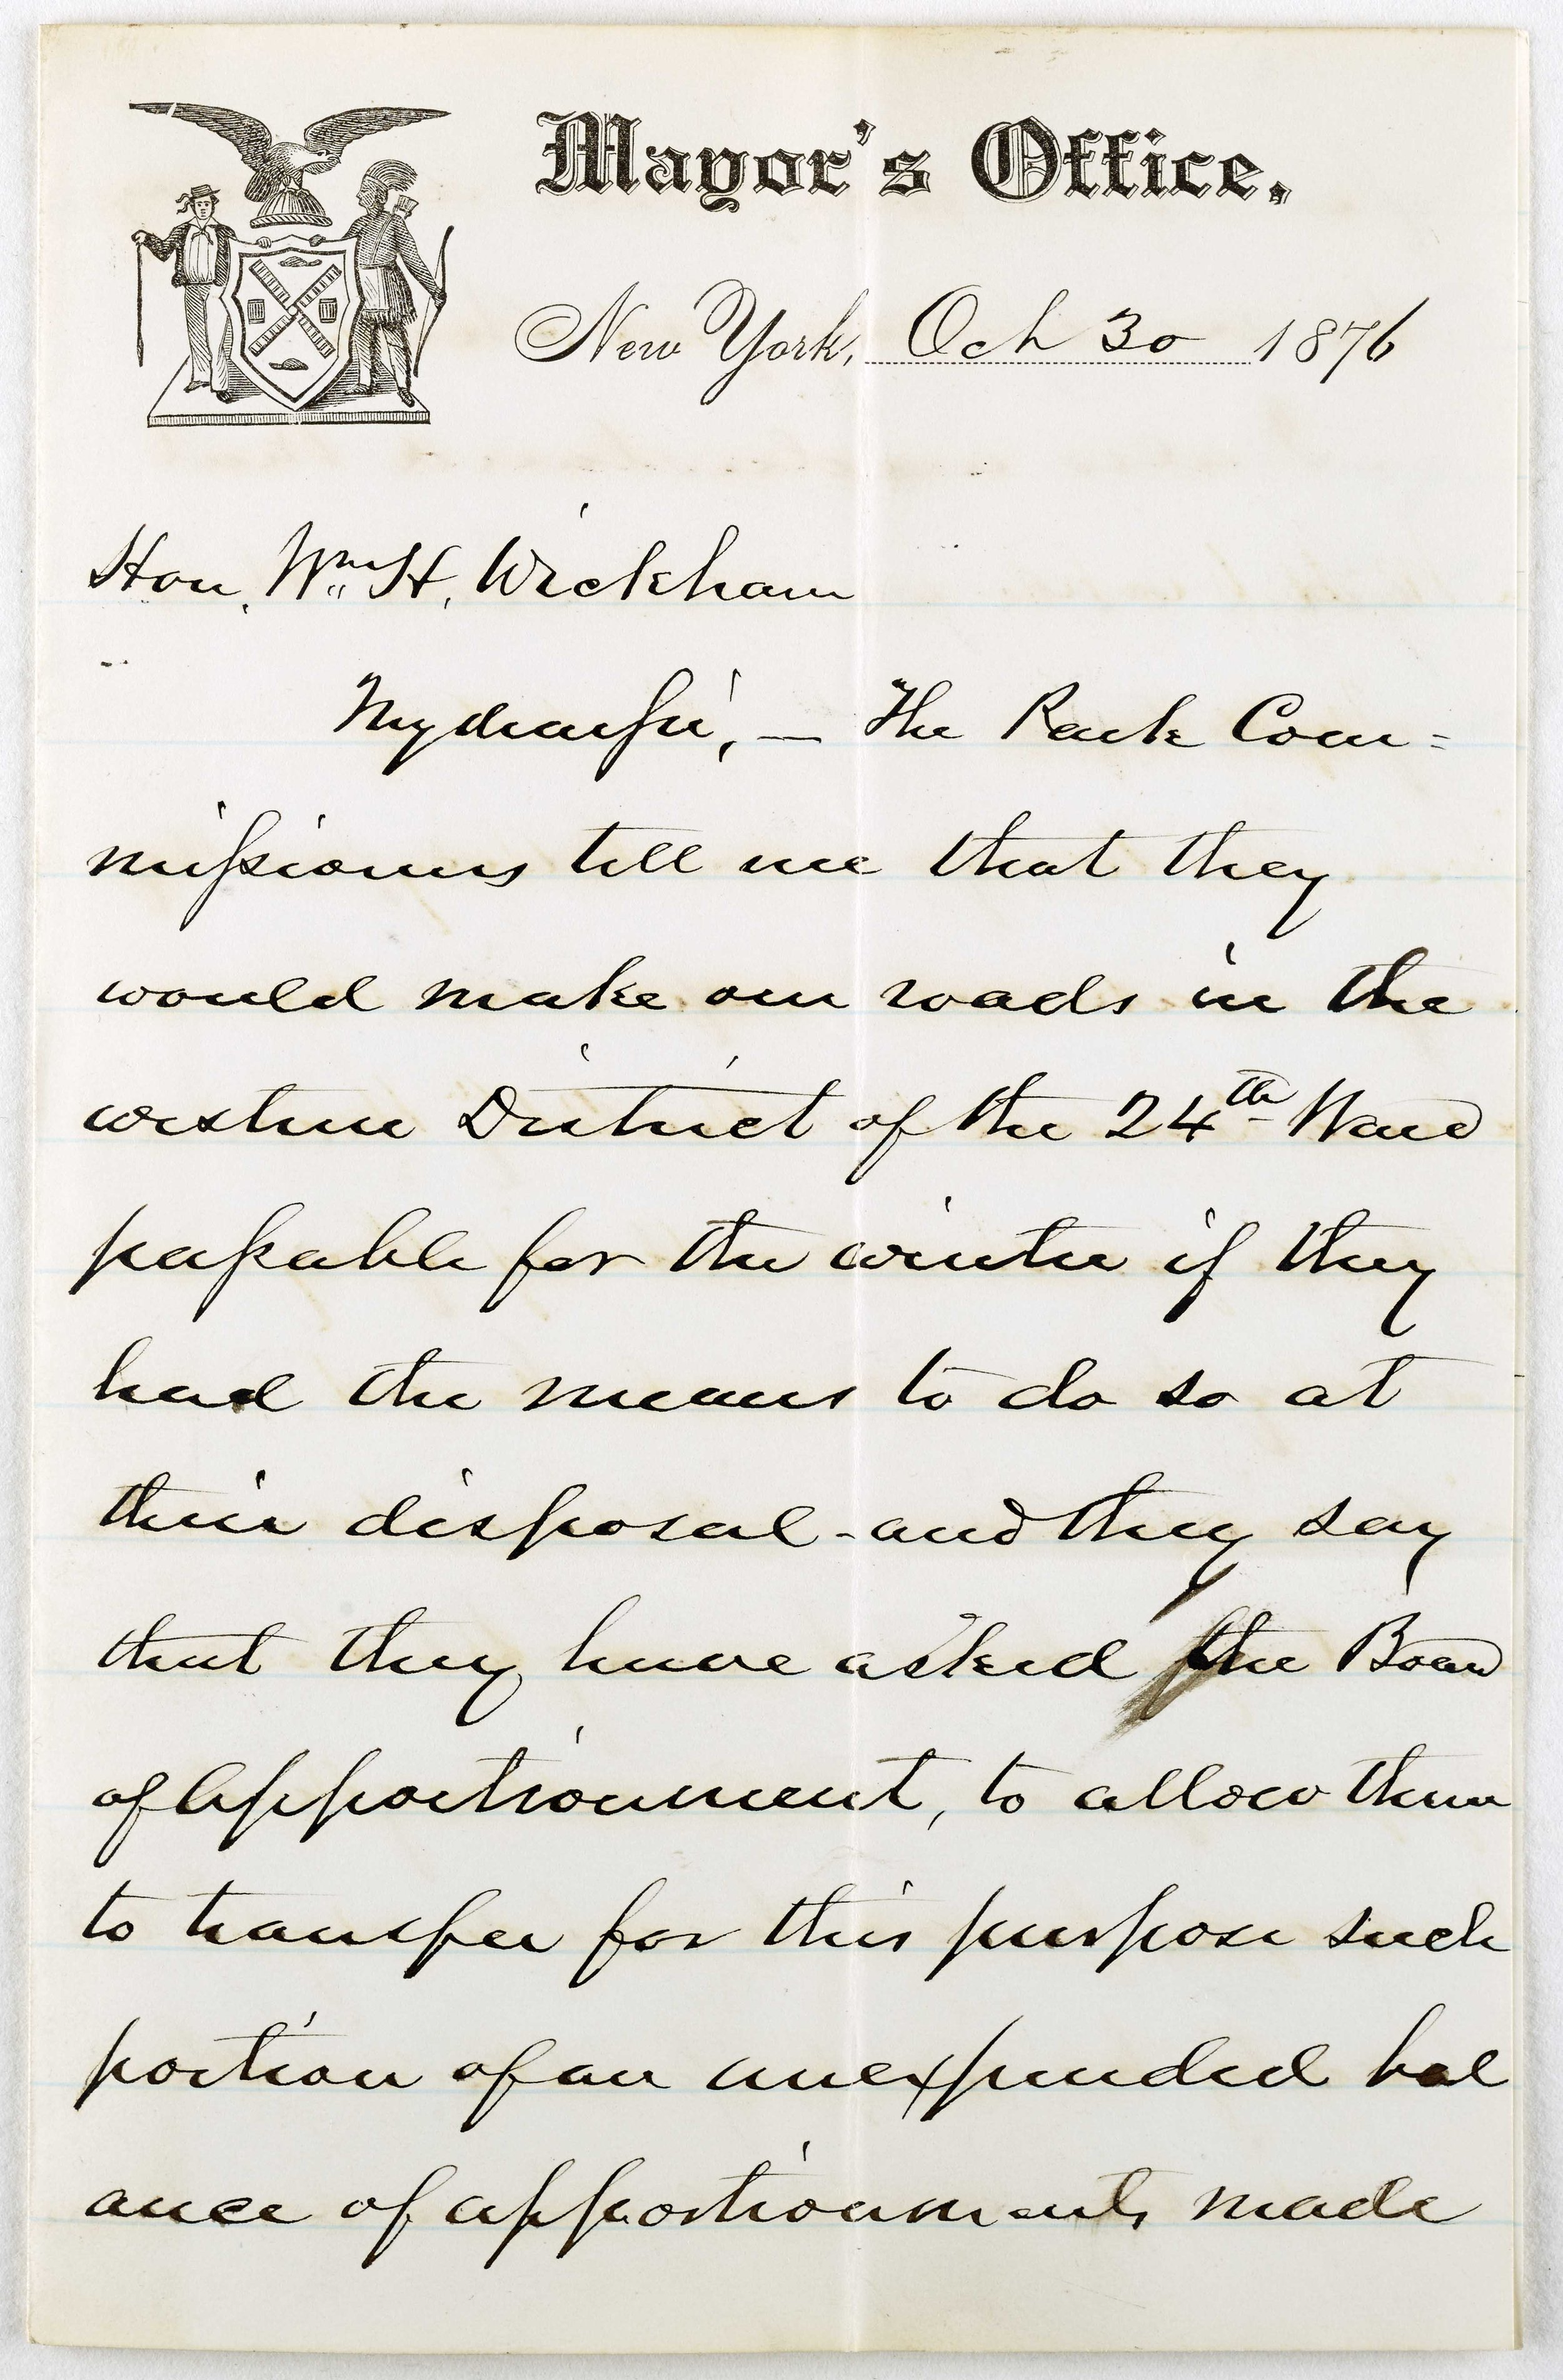 1876 letter from Hiram Barney to Mayor Wickham about making roads in the 24th Ward passable during winter. At this time, the area was under the political jurisdiction of the Department of Public Parks. Mayor William H. Wickham Subject Files.